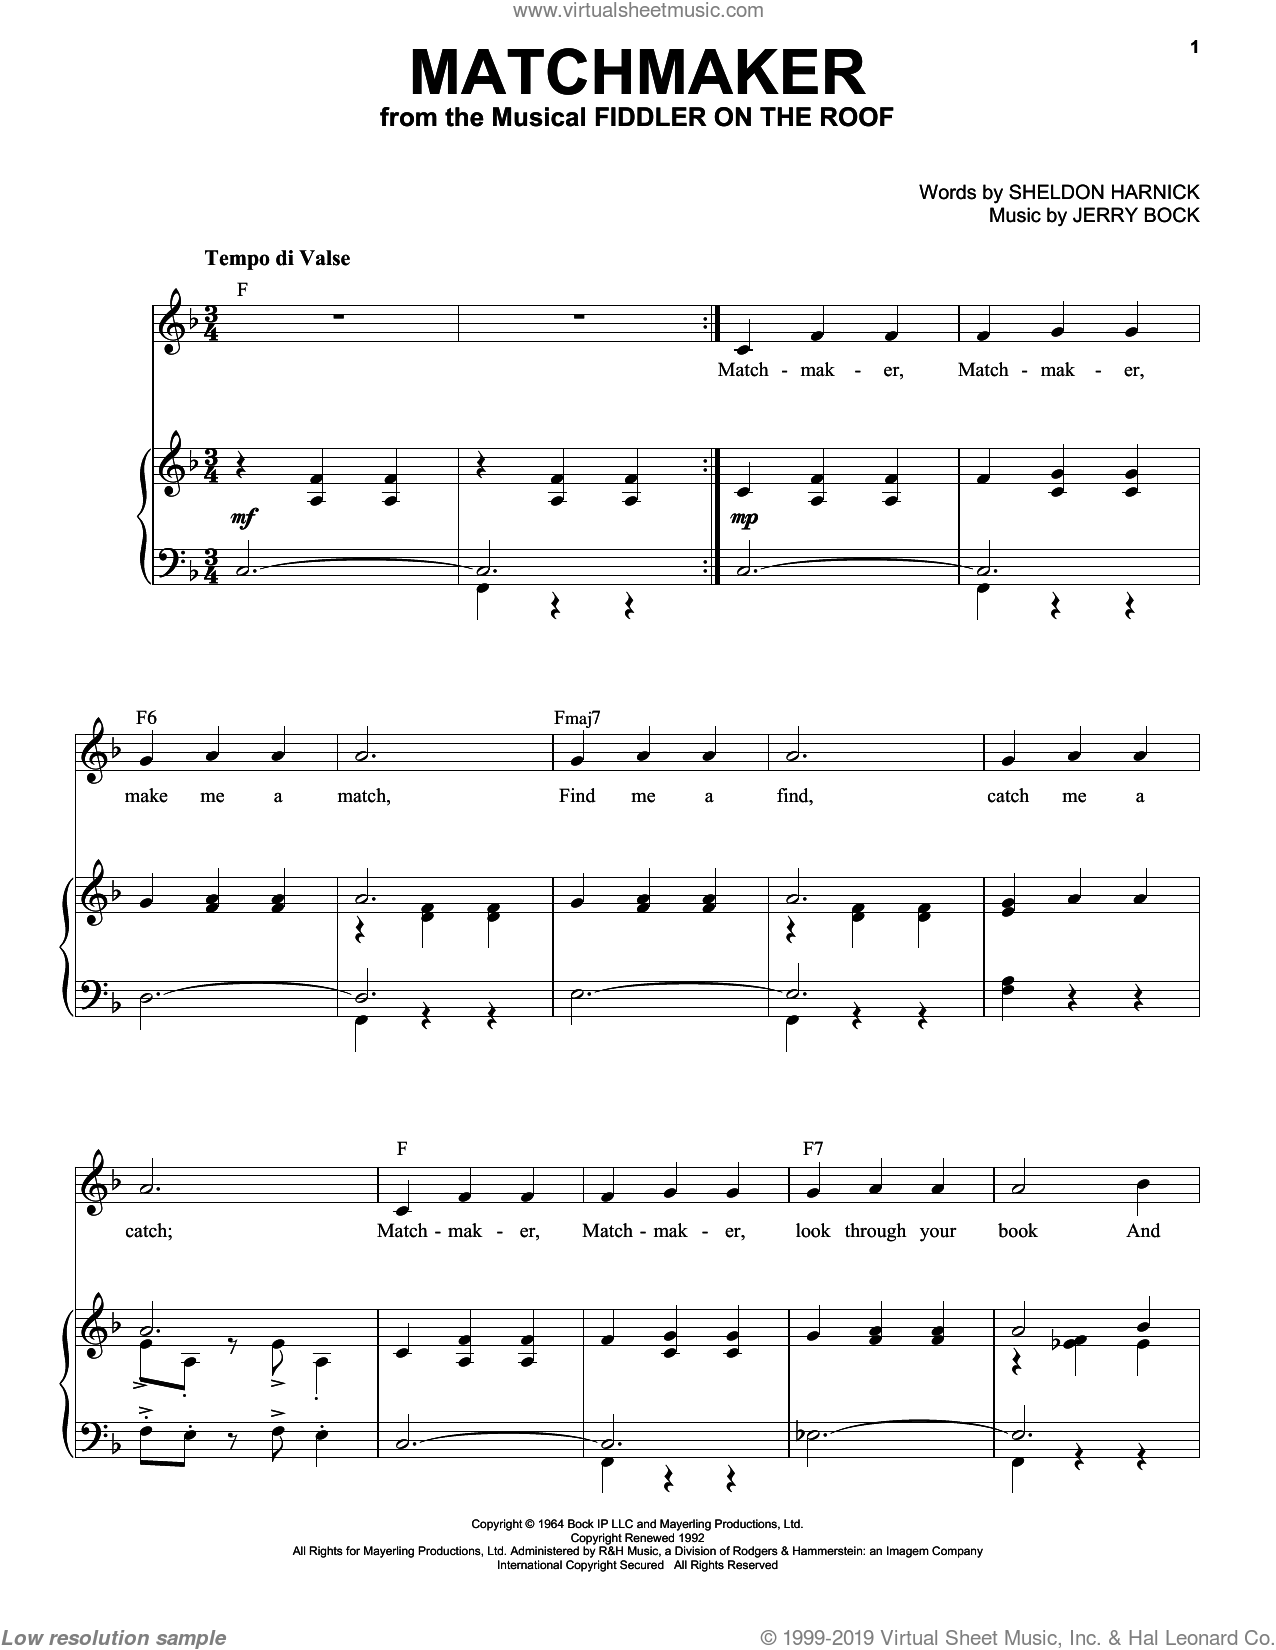 Matchmaker (from Fiddler On The Roof) sheet music for voice and piano (High Voice) by Bock & Harnick, Jerry Bock and Sheldon Harnick, intermediate skill level